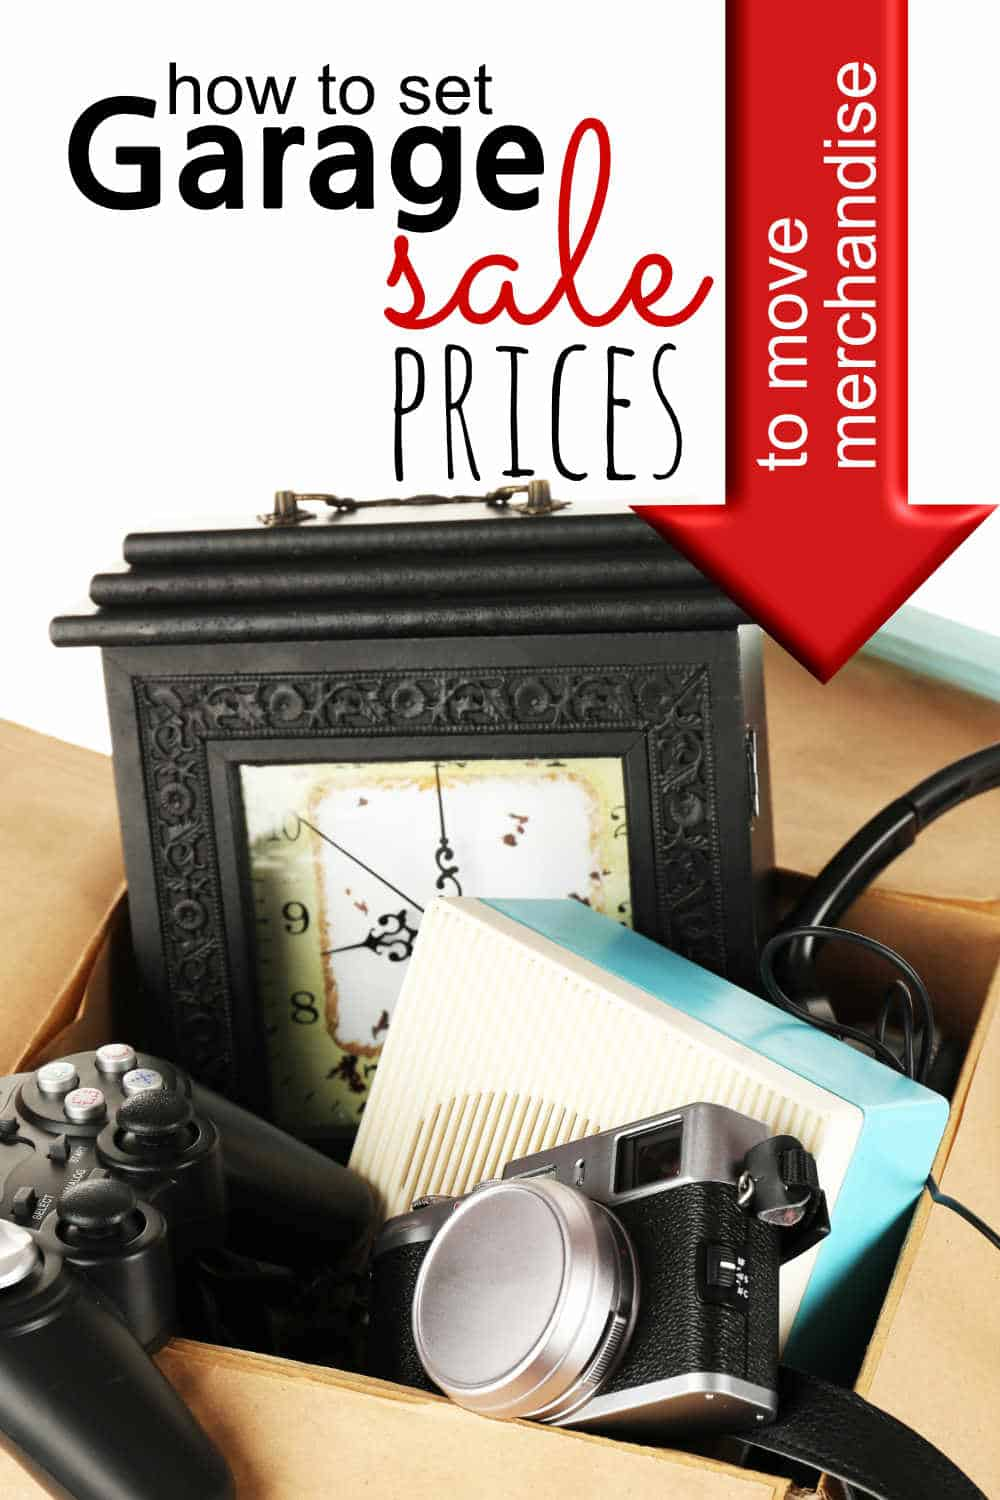 Garage sale prices are expected to be rock bottom. It's the last ditch effort to make a little money. That doesn't mean you should be taken advantage of. It simply means you need to be realistic when you set your garage sale prices.